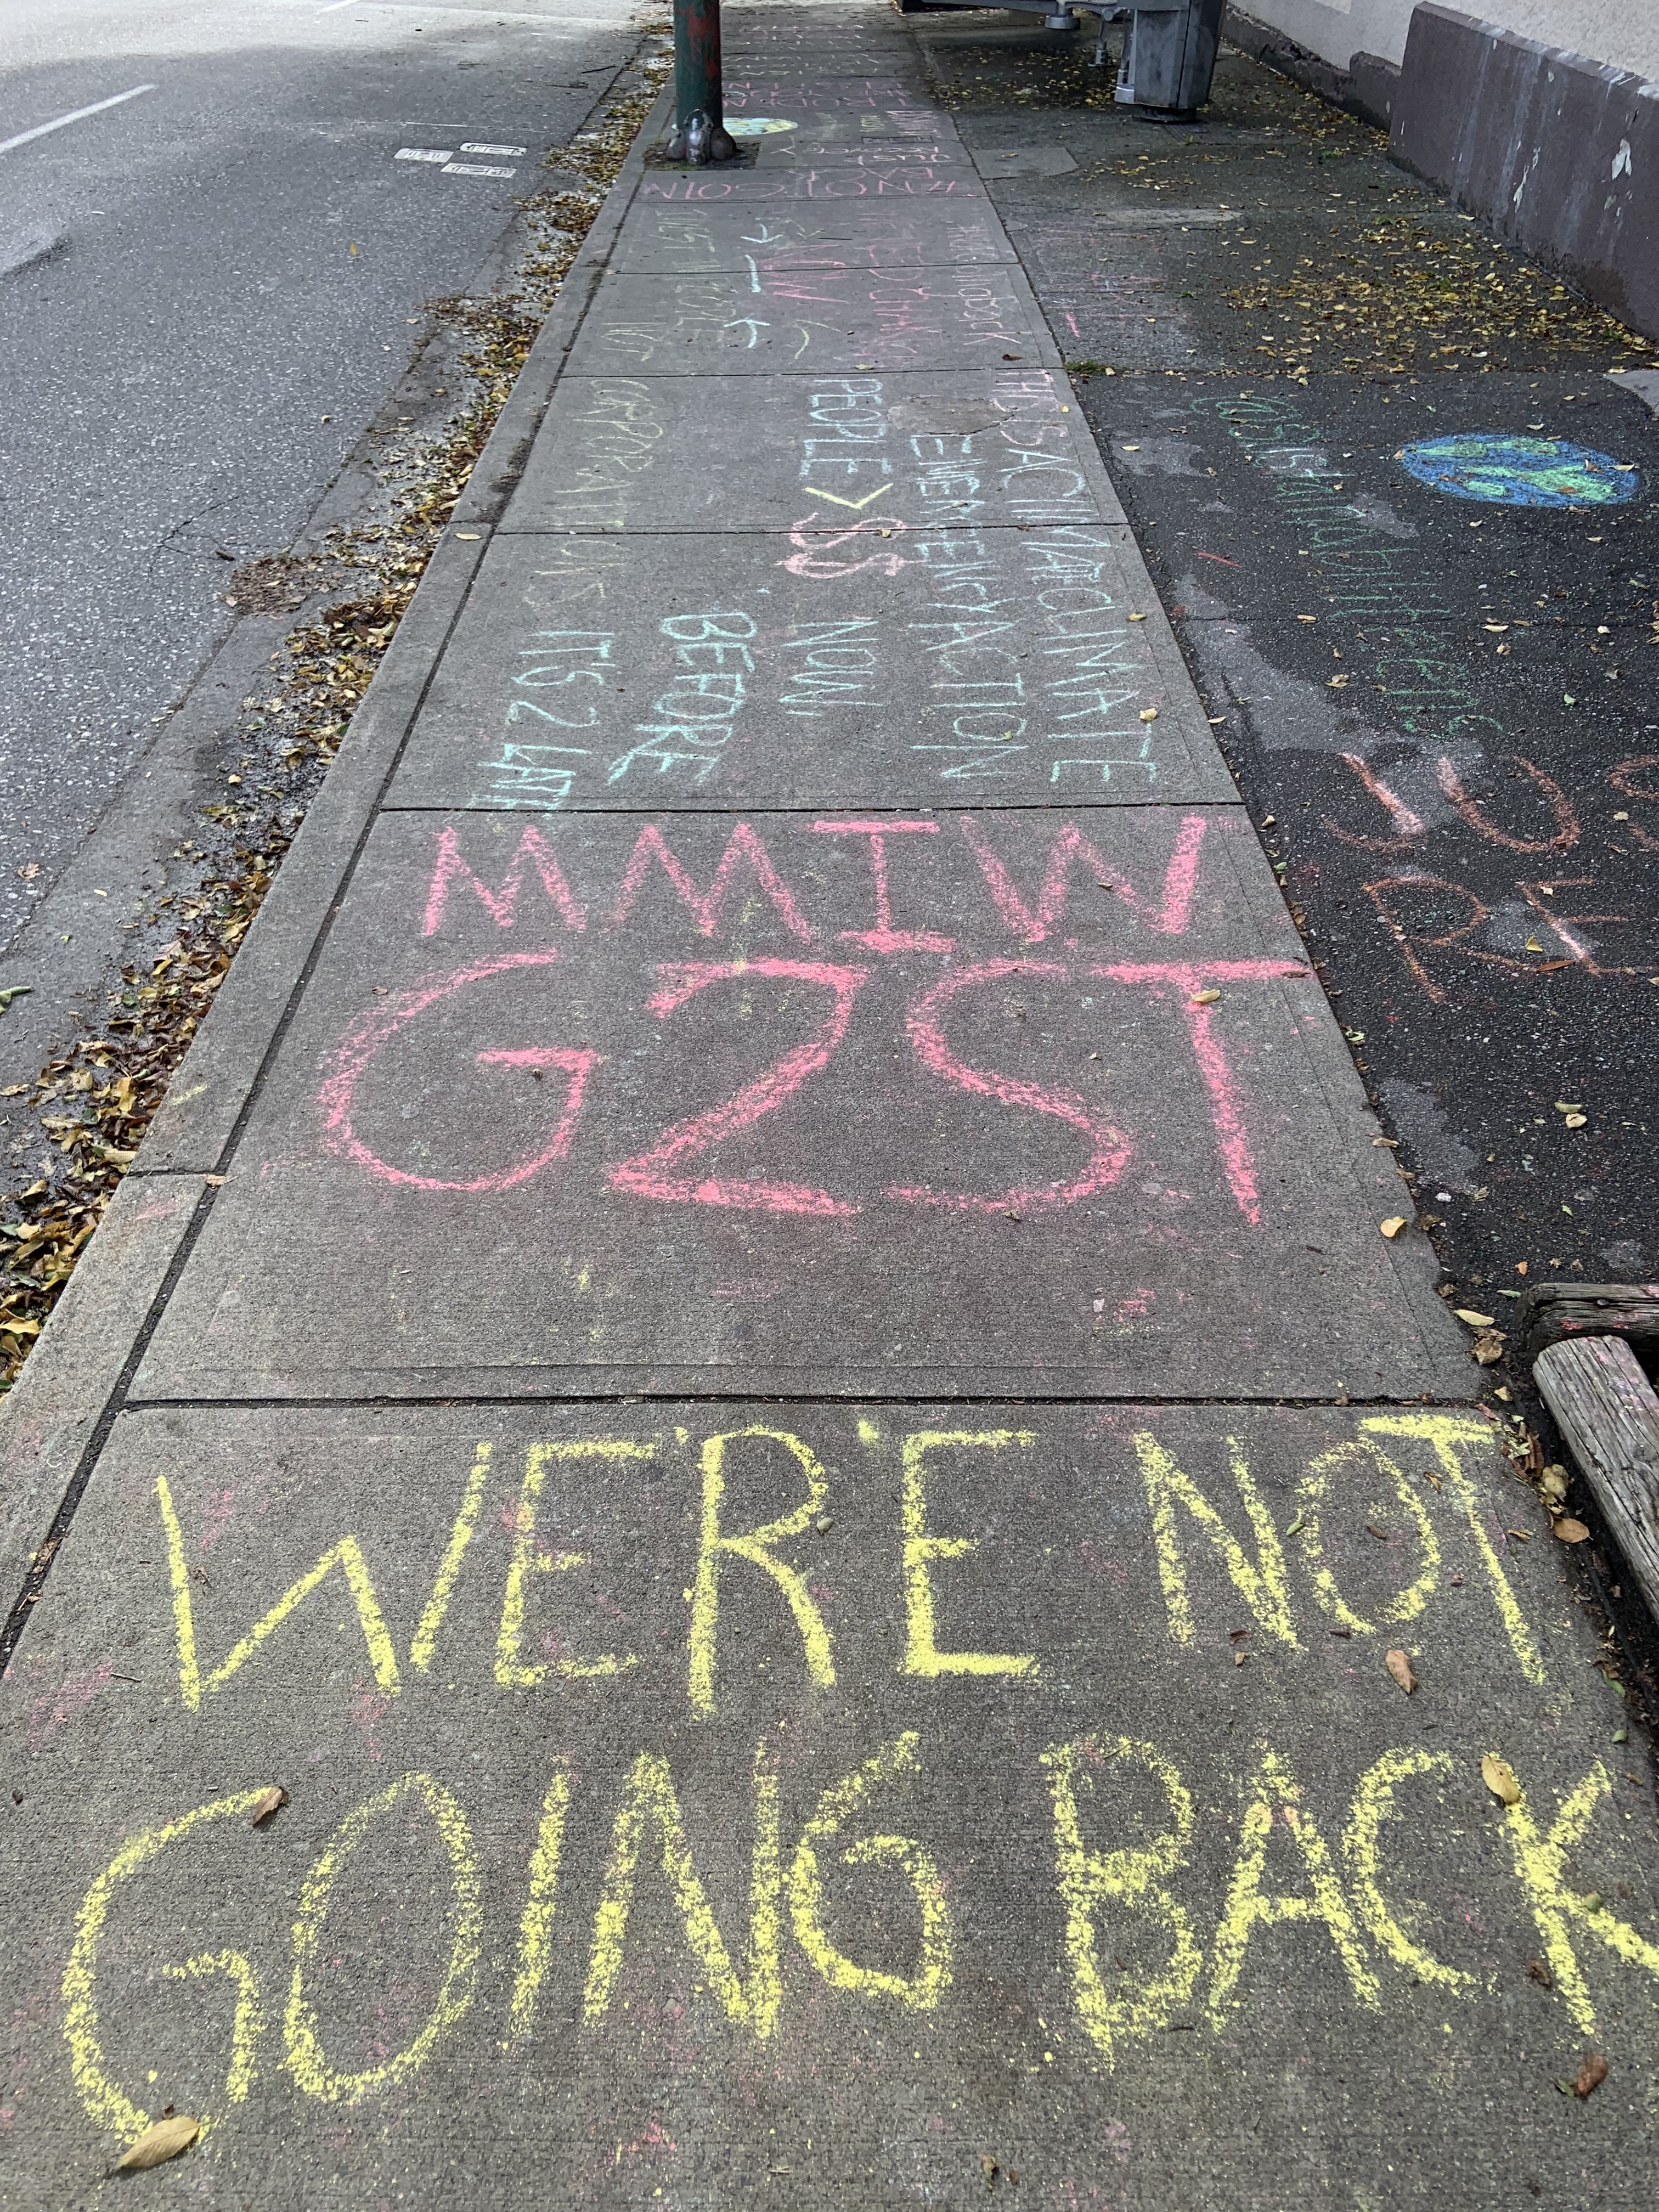 The sidewalk in front of Joyce Murray's Broadway office today.